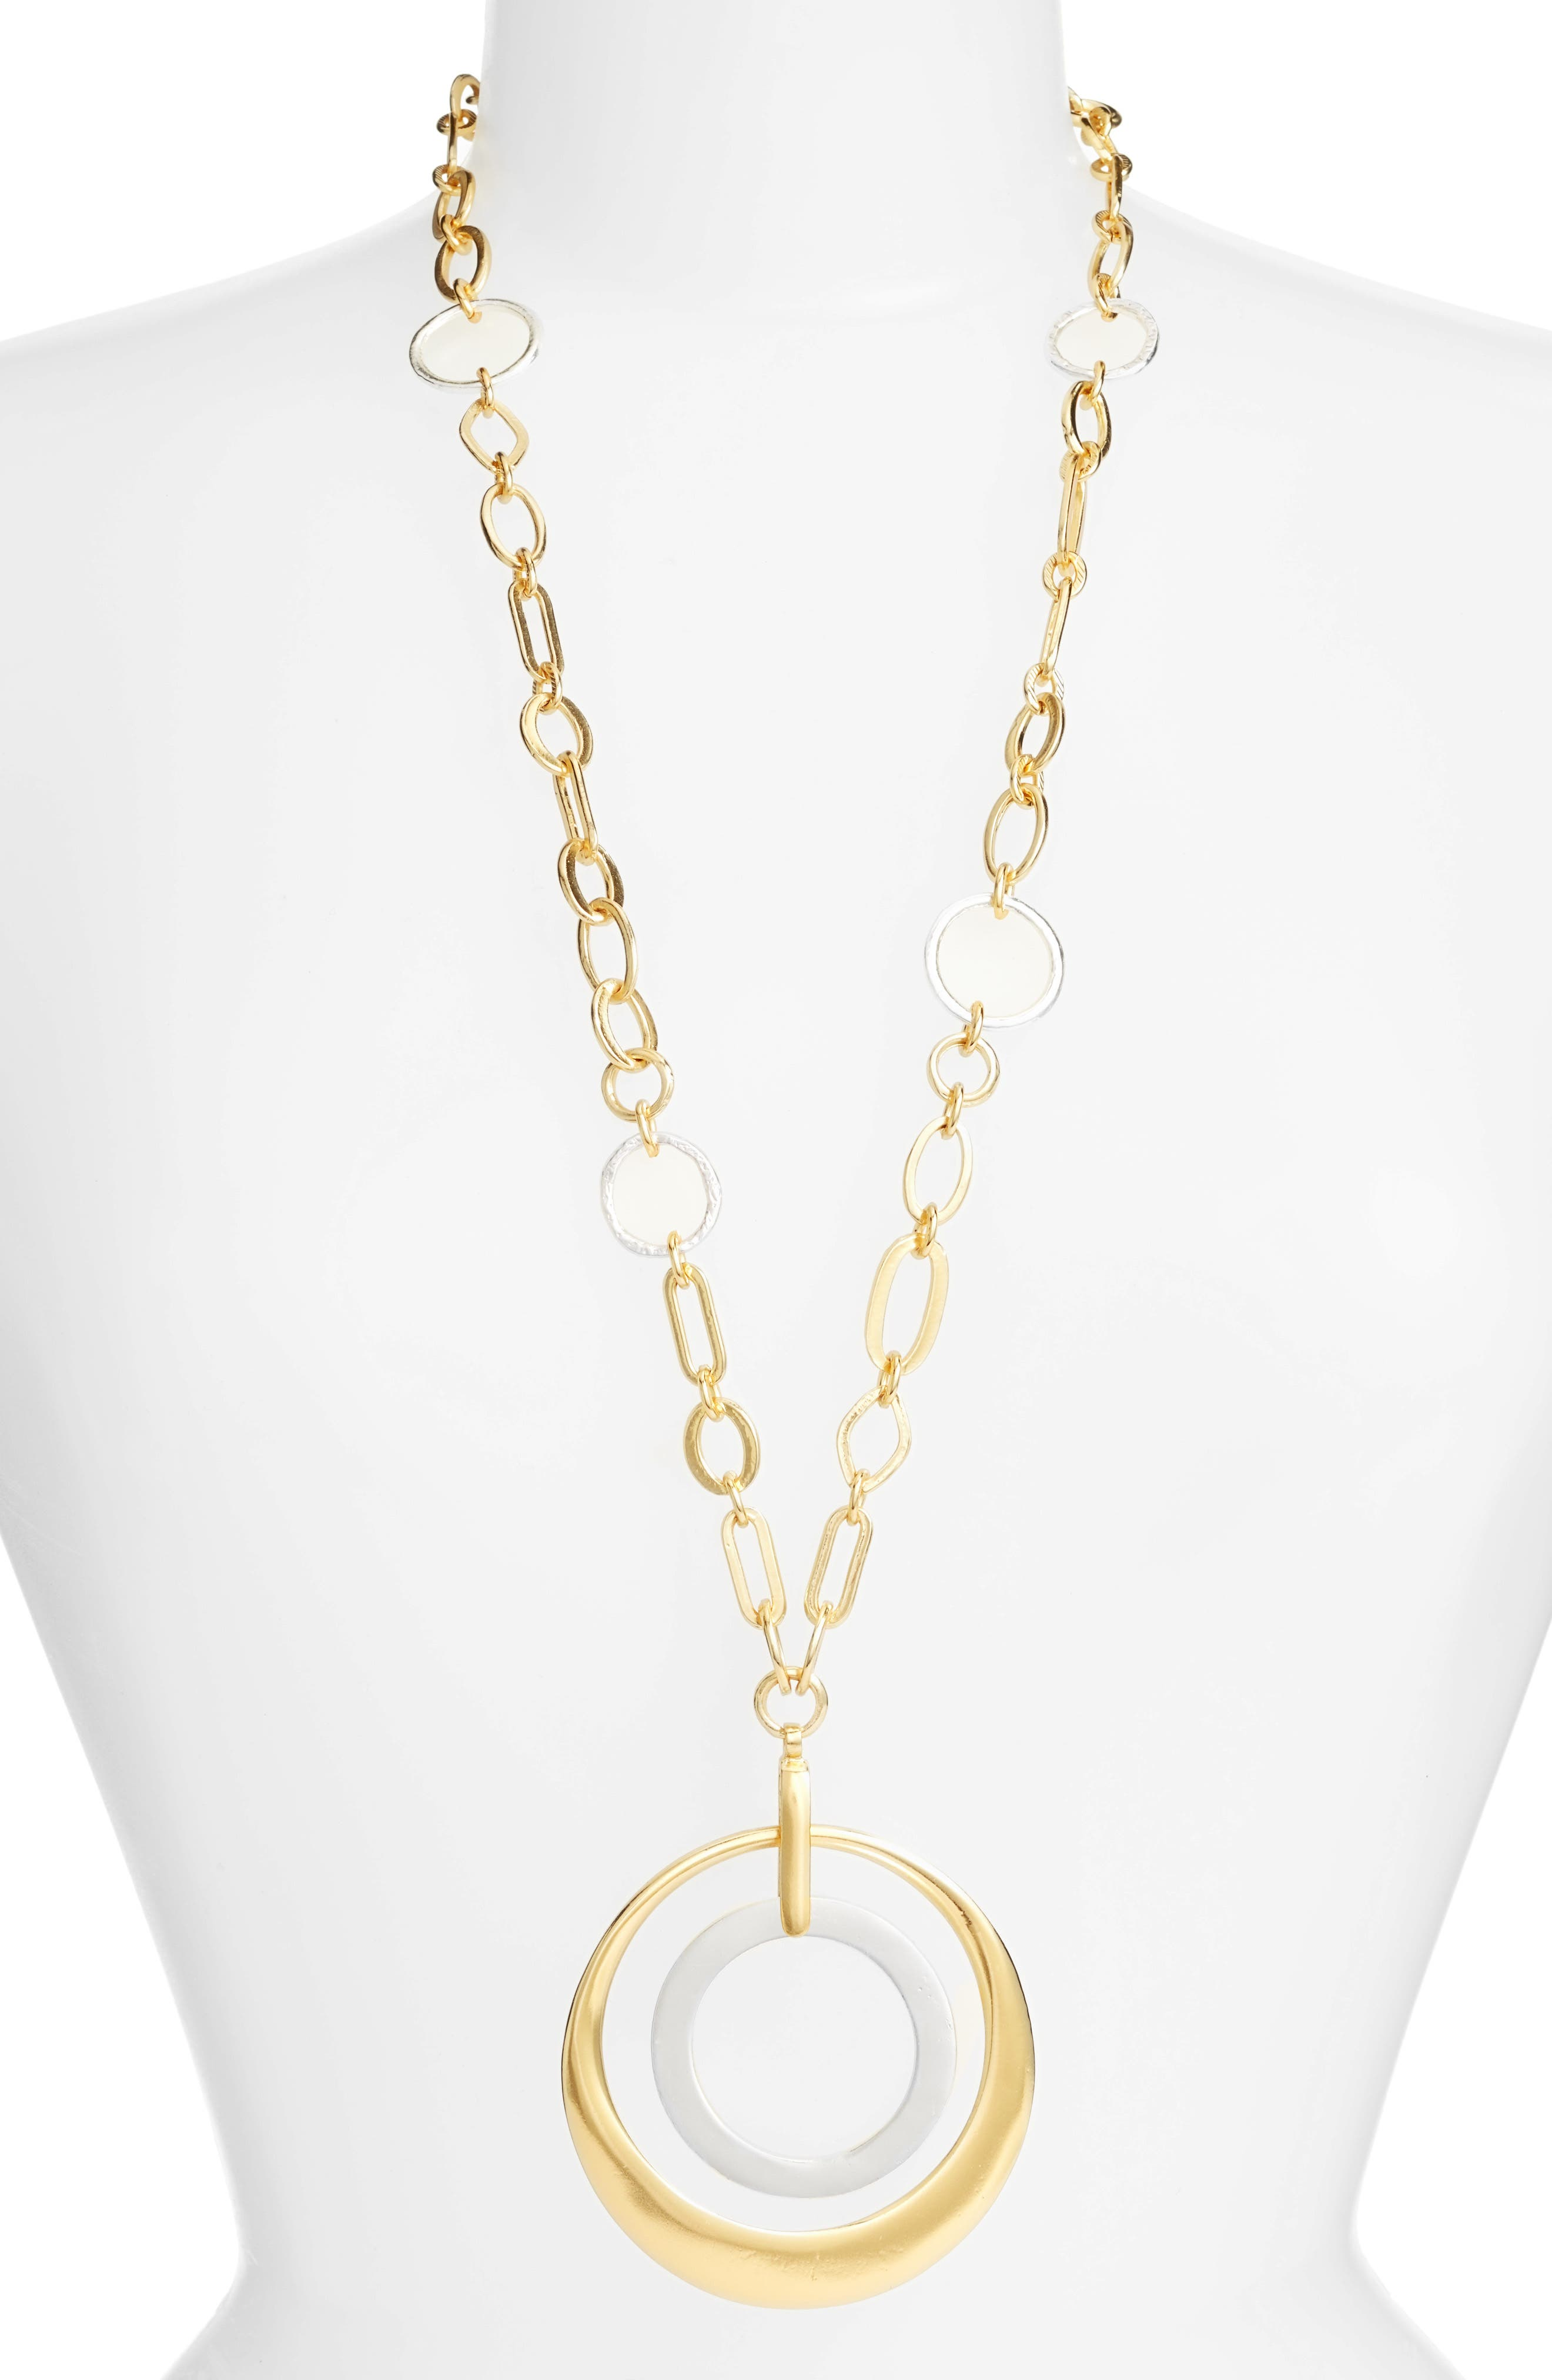 Karine Sultan Double Circle Pendant Necklace